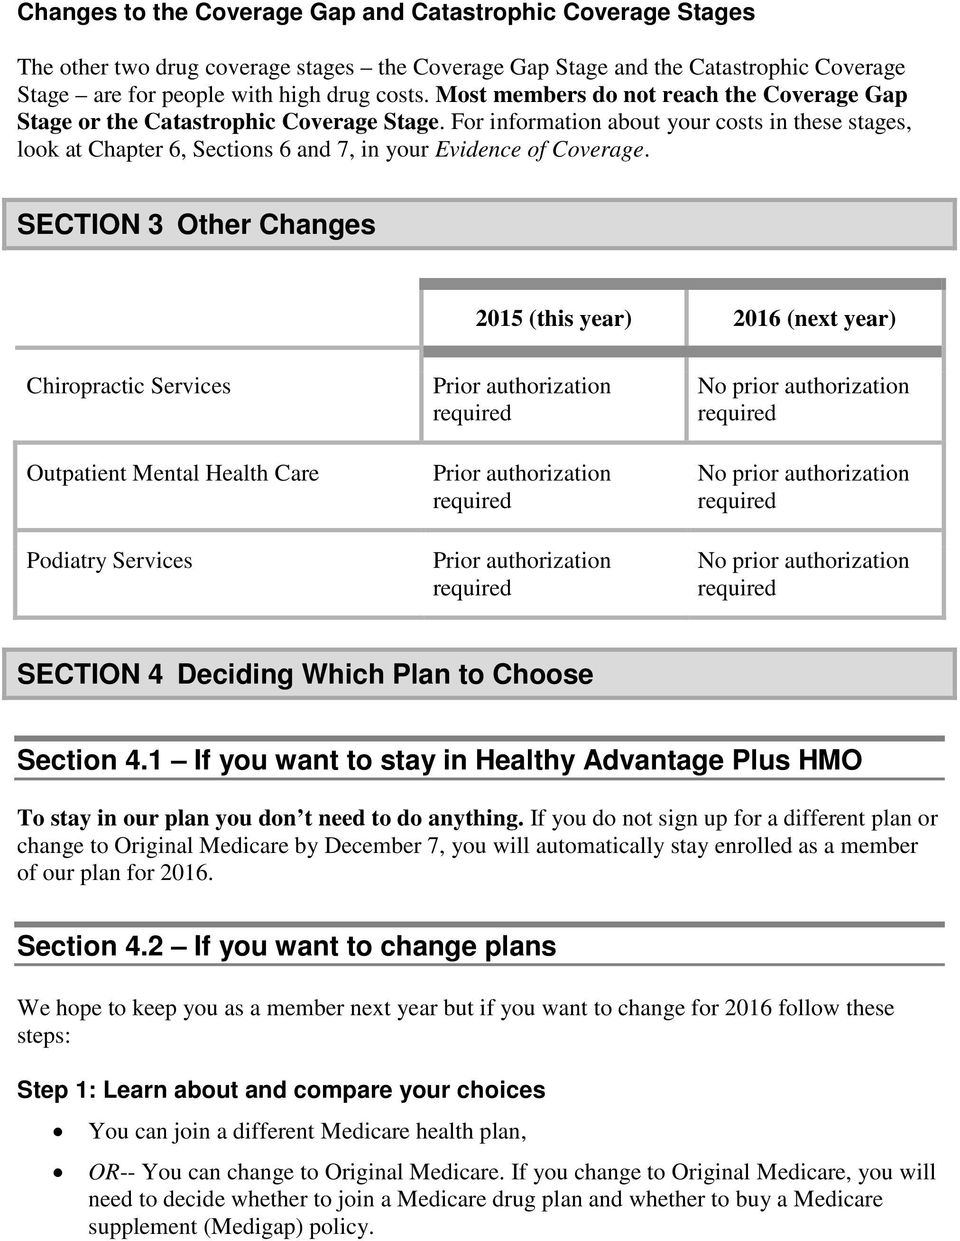 For information about your costs in these stages, look at Chapter 6, Sections 6 and 7, in your Evidence of Coverage.